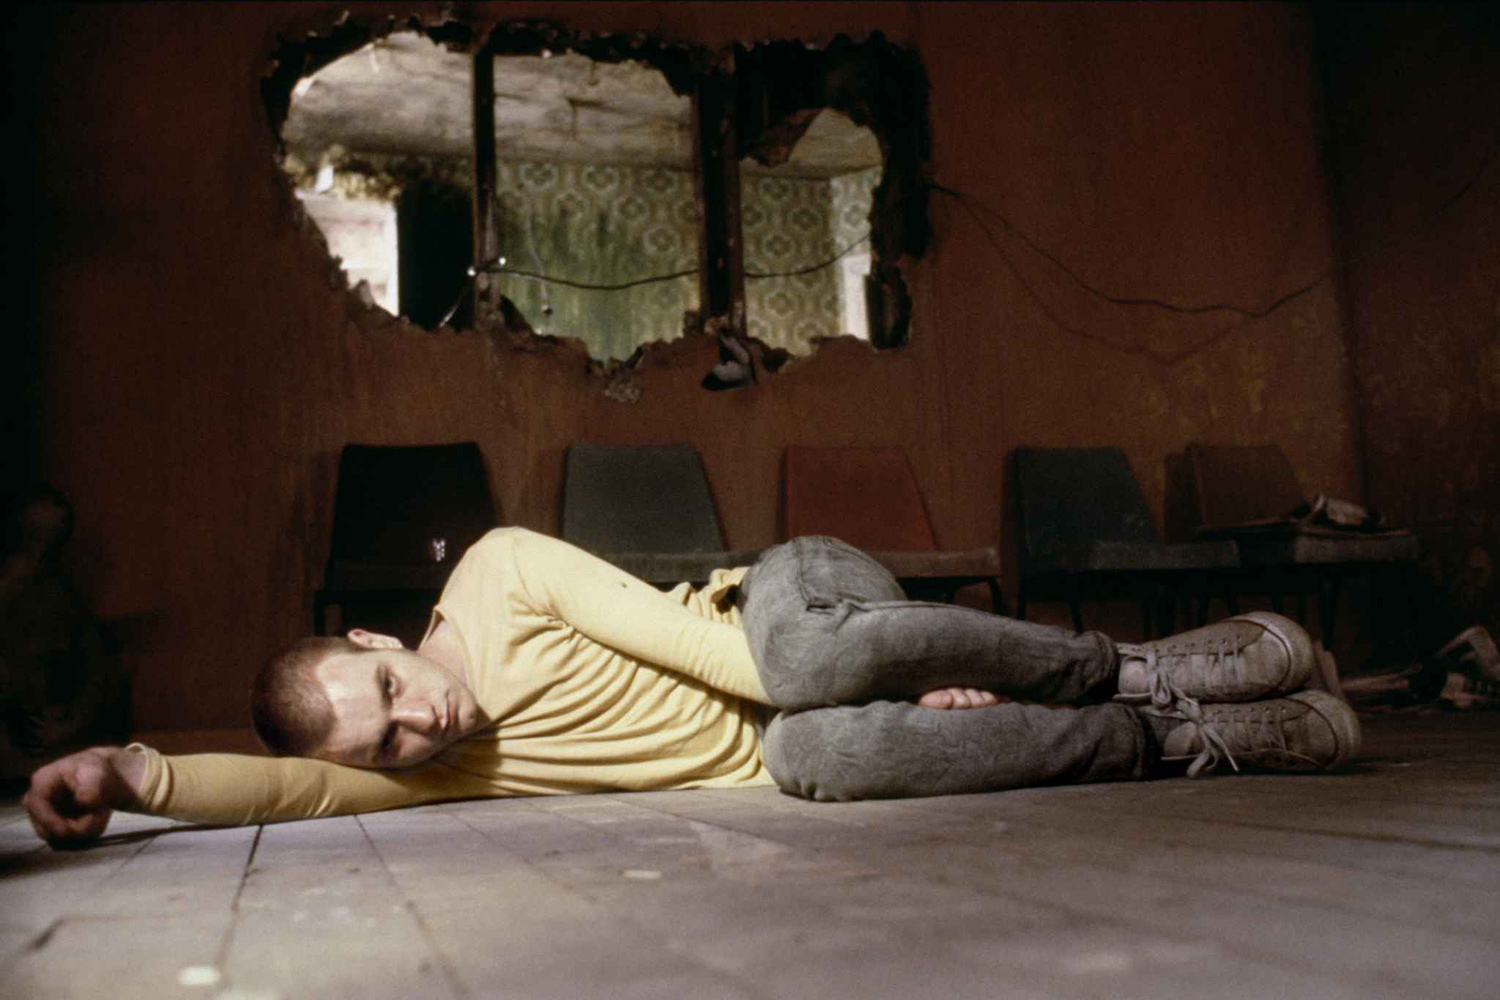 T2-Trainspotting-03